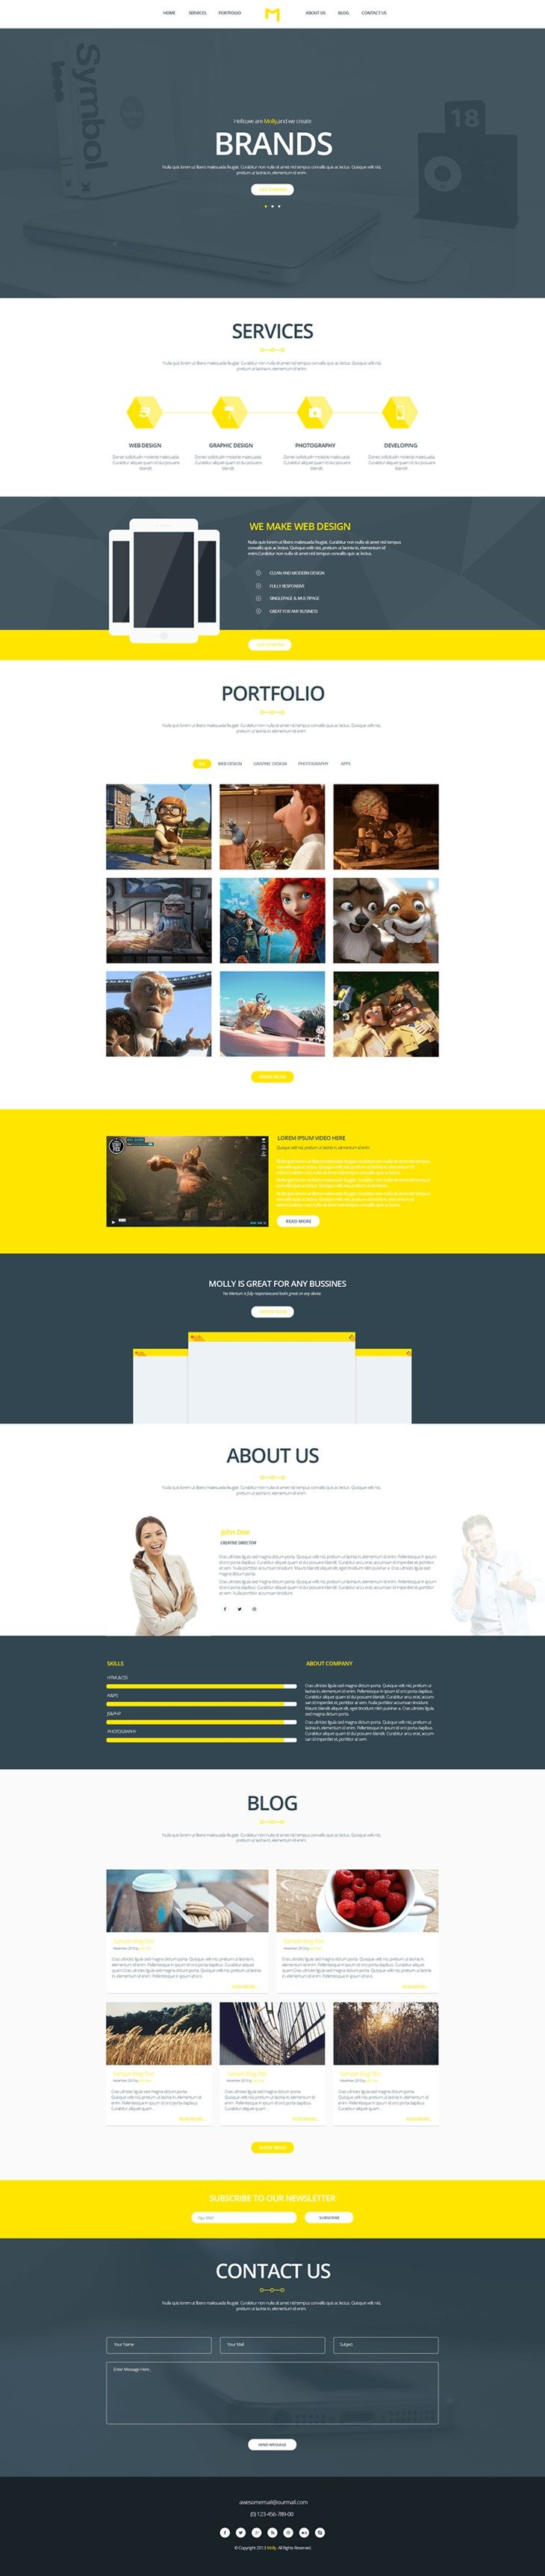 Free Single Page Website Templates Psd Css Author Brochure Template Psd Webpage Template Website Template One page website template free